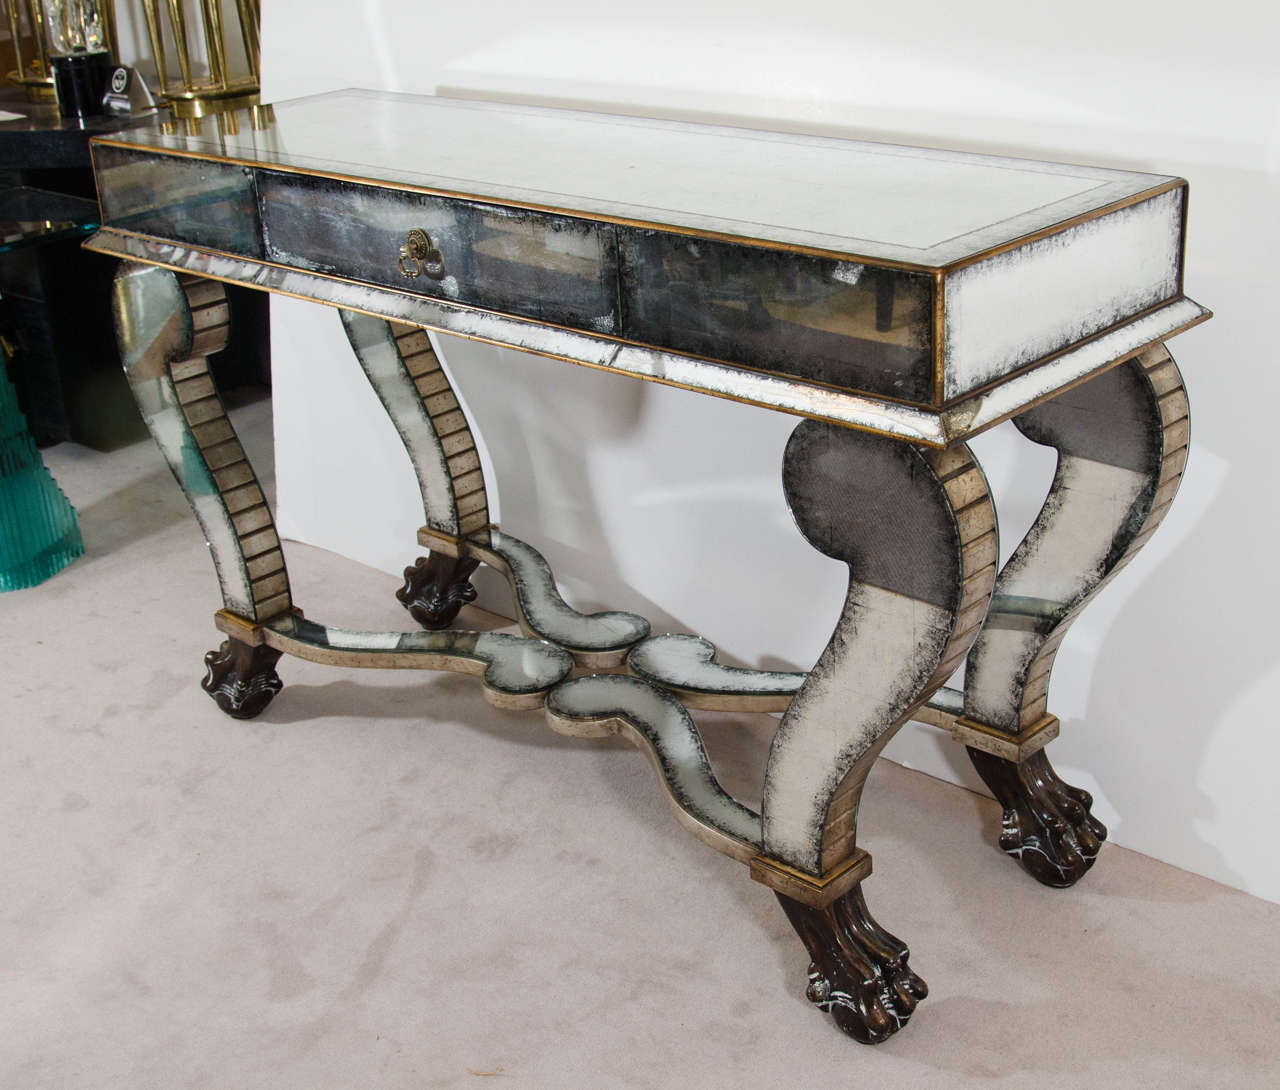 Phenomenal Antiqued Mirrored Console Table With Ball And Claw Feet At Theyellowbook Wood Chair Design Ideas Theyellowbookinfo